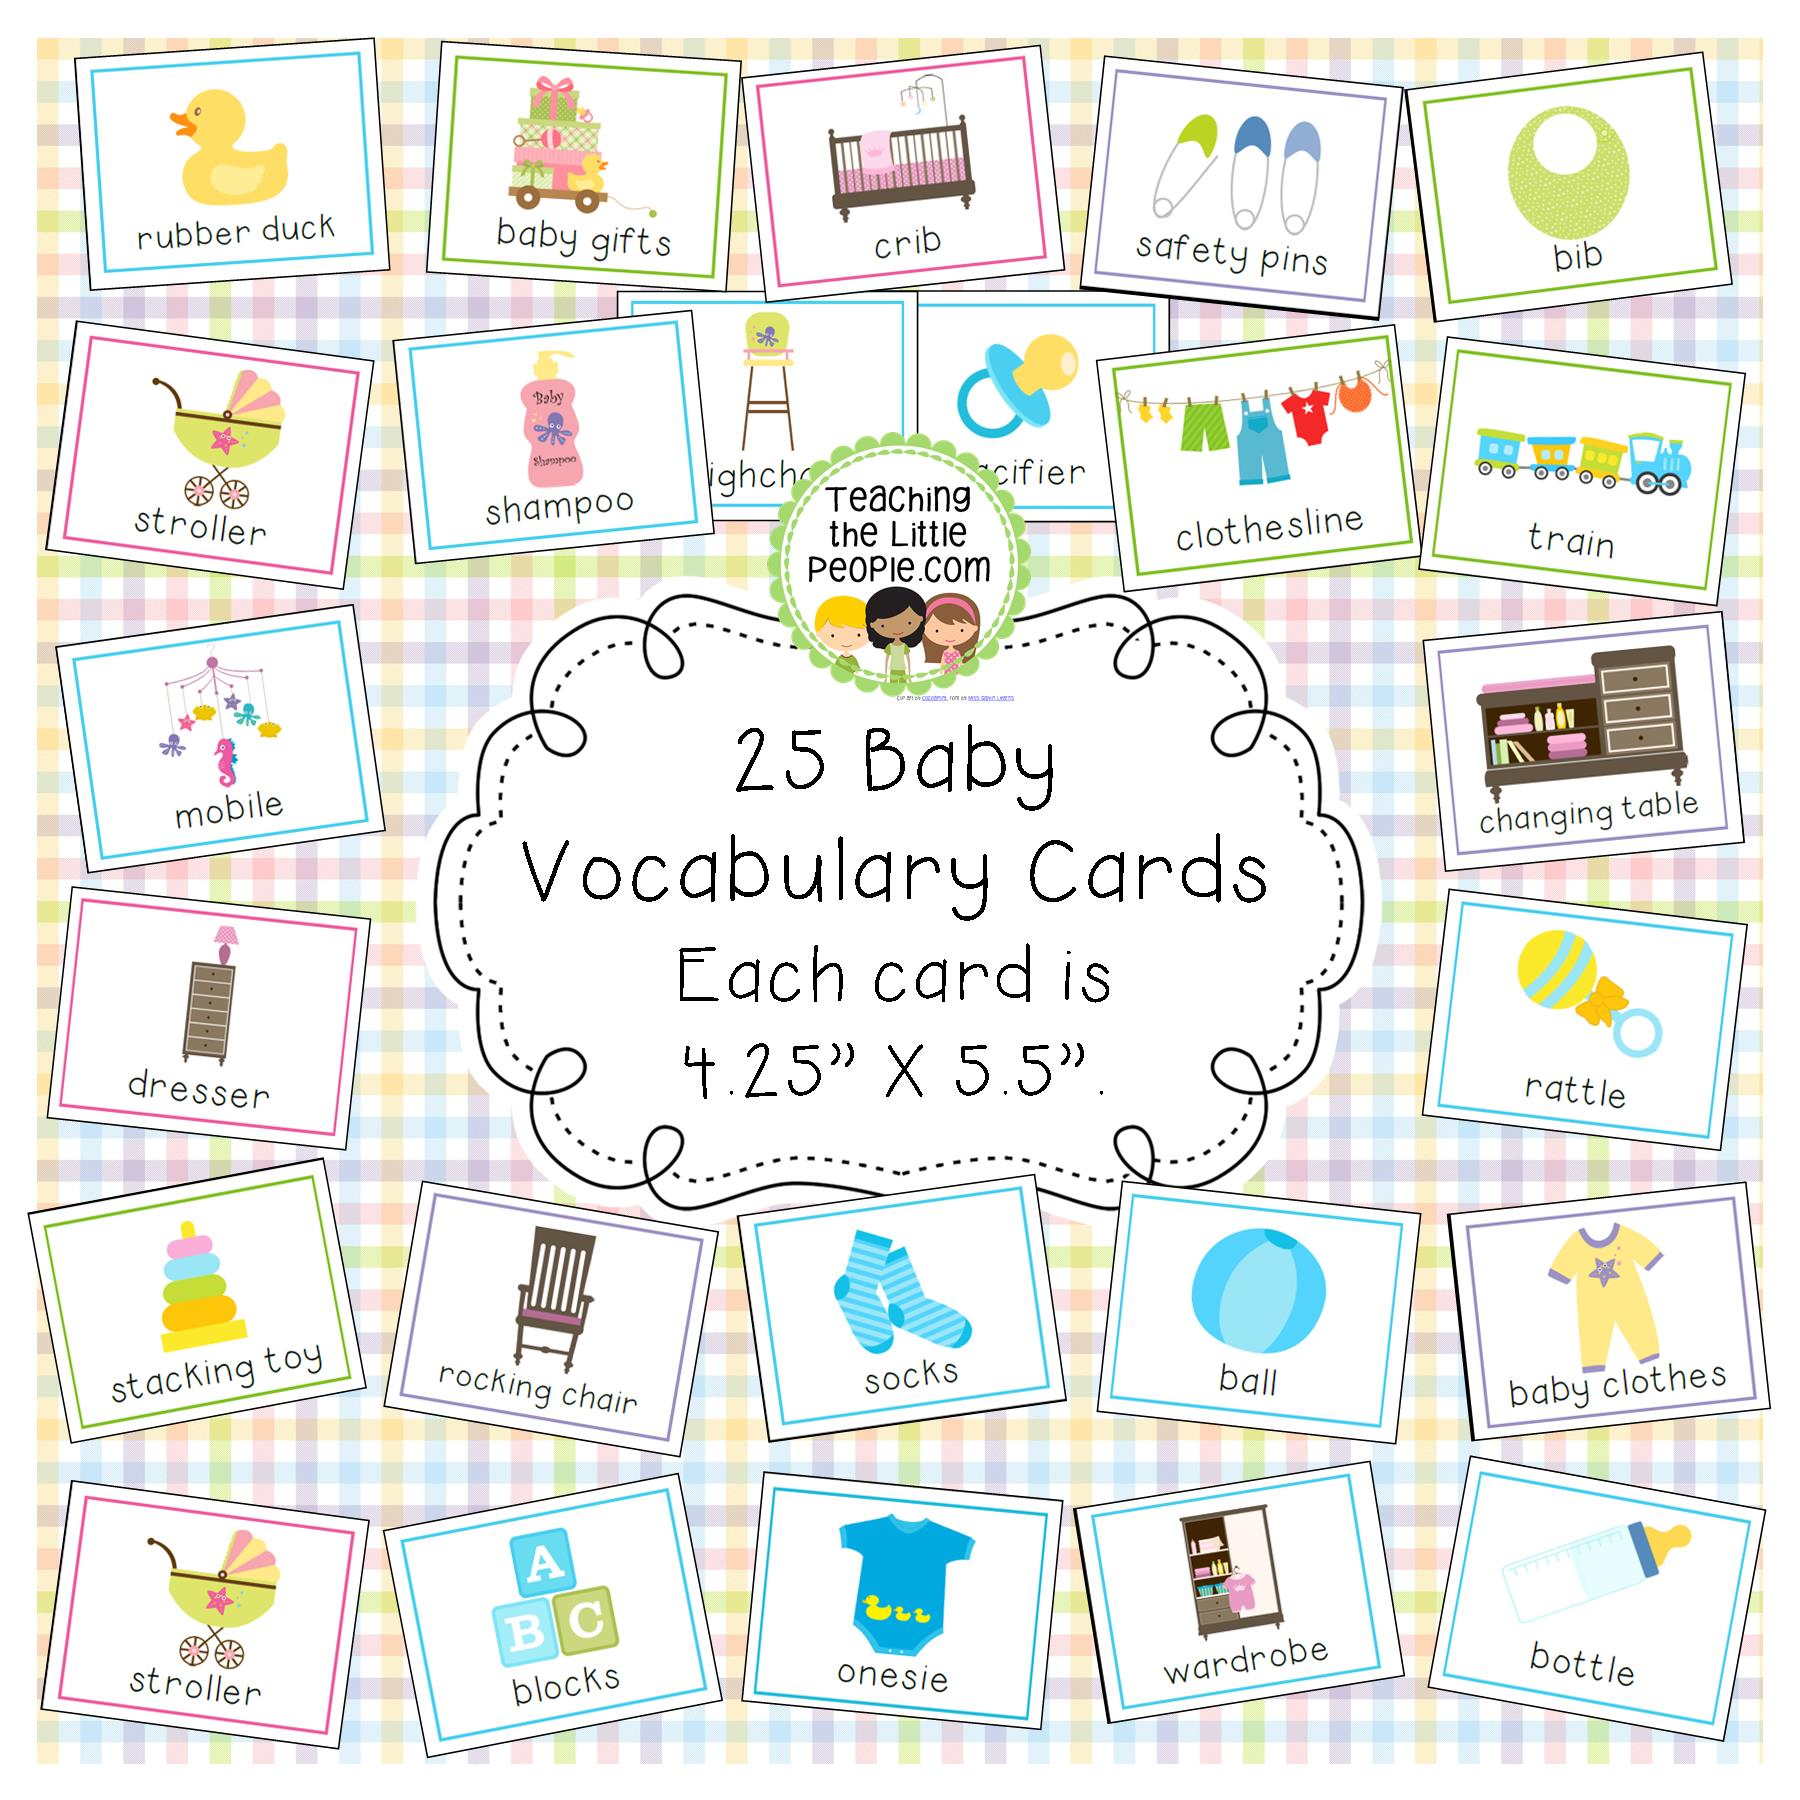 Baby Vocabulary Cards for Preschool and Kindergarten Image